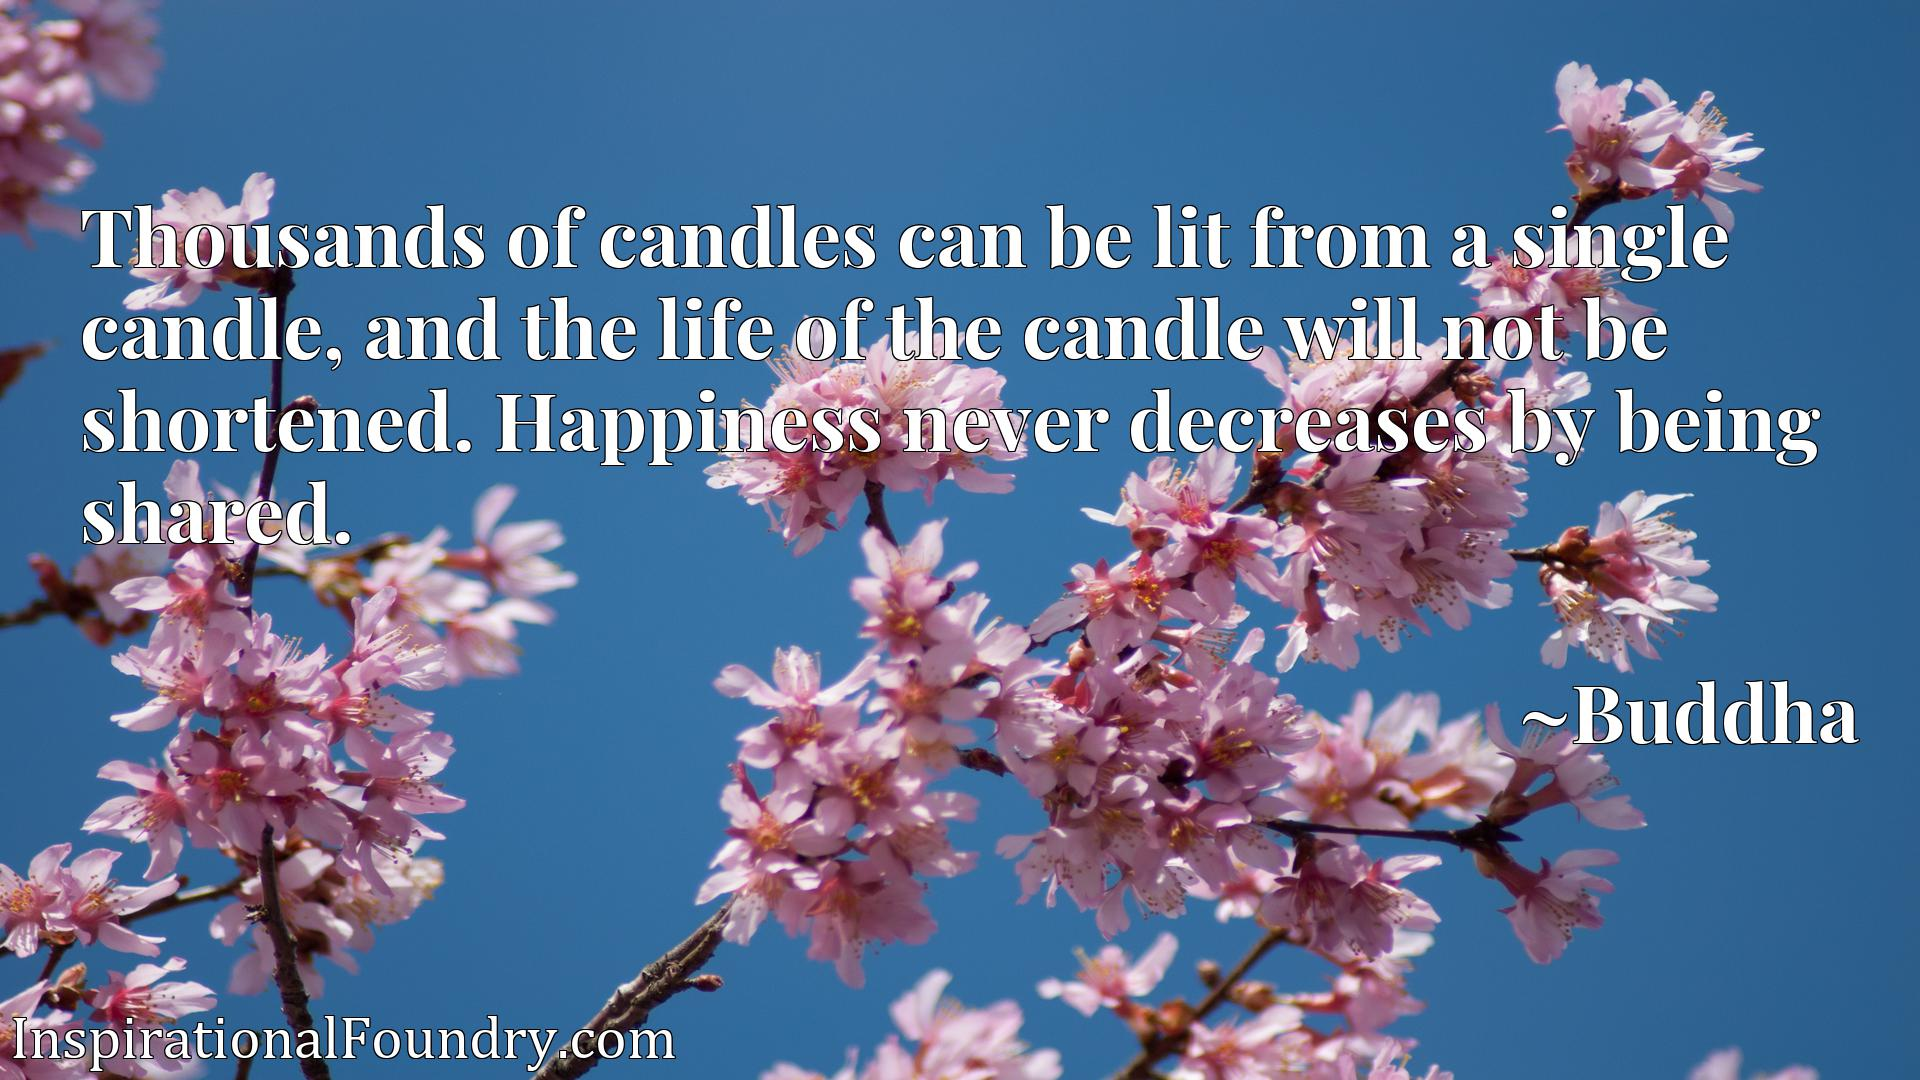 Quote Picture :Thousands of candles can be lit from a single candle, and the life of the candle will not be shortened. Happiness never decreases by being shared.